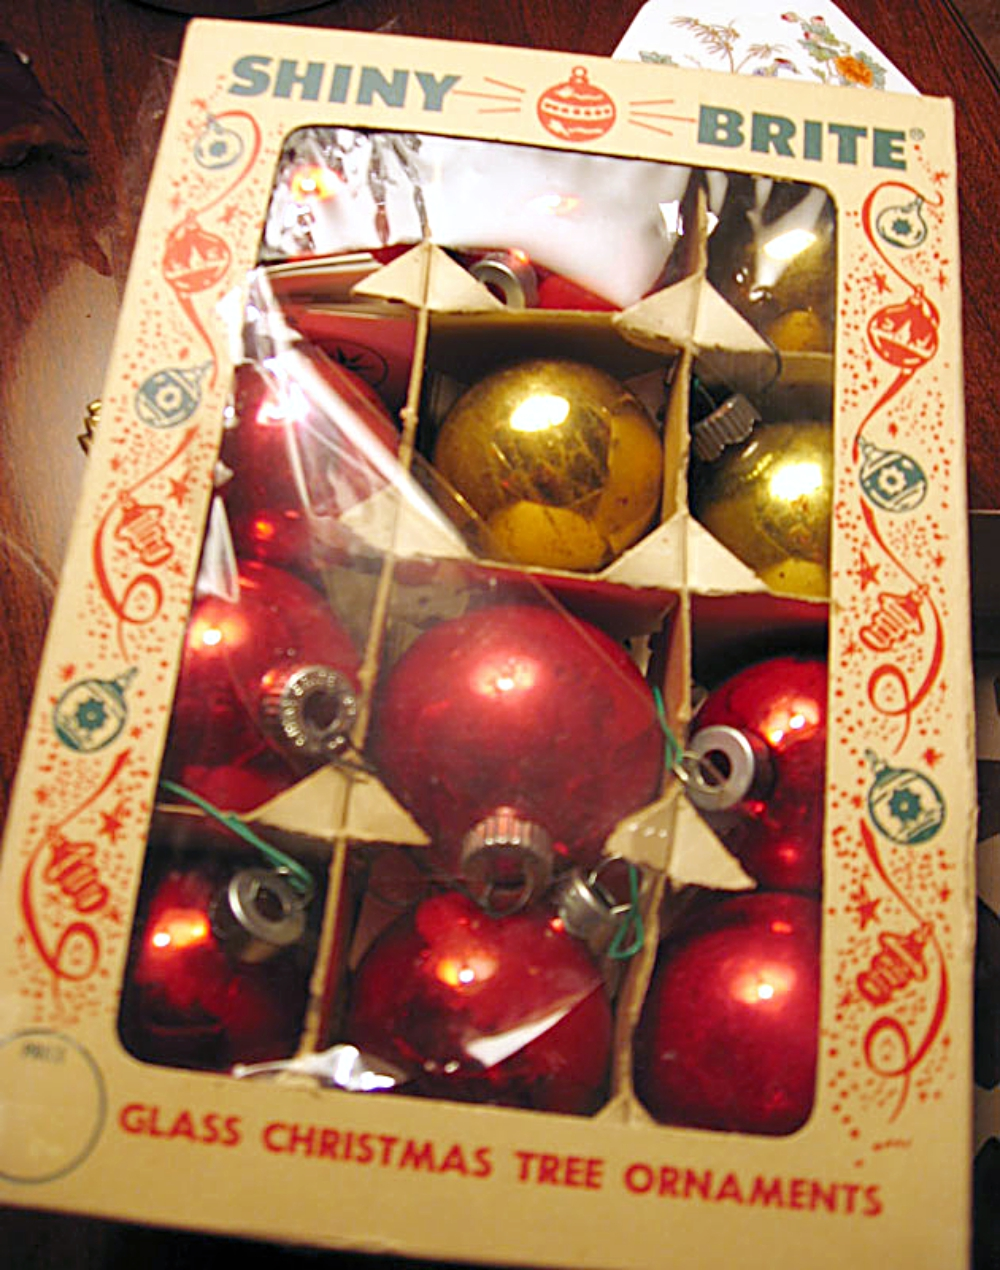 vintage Christmas ornaments we love!